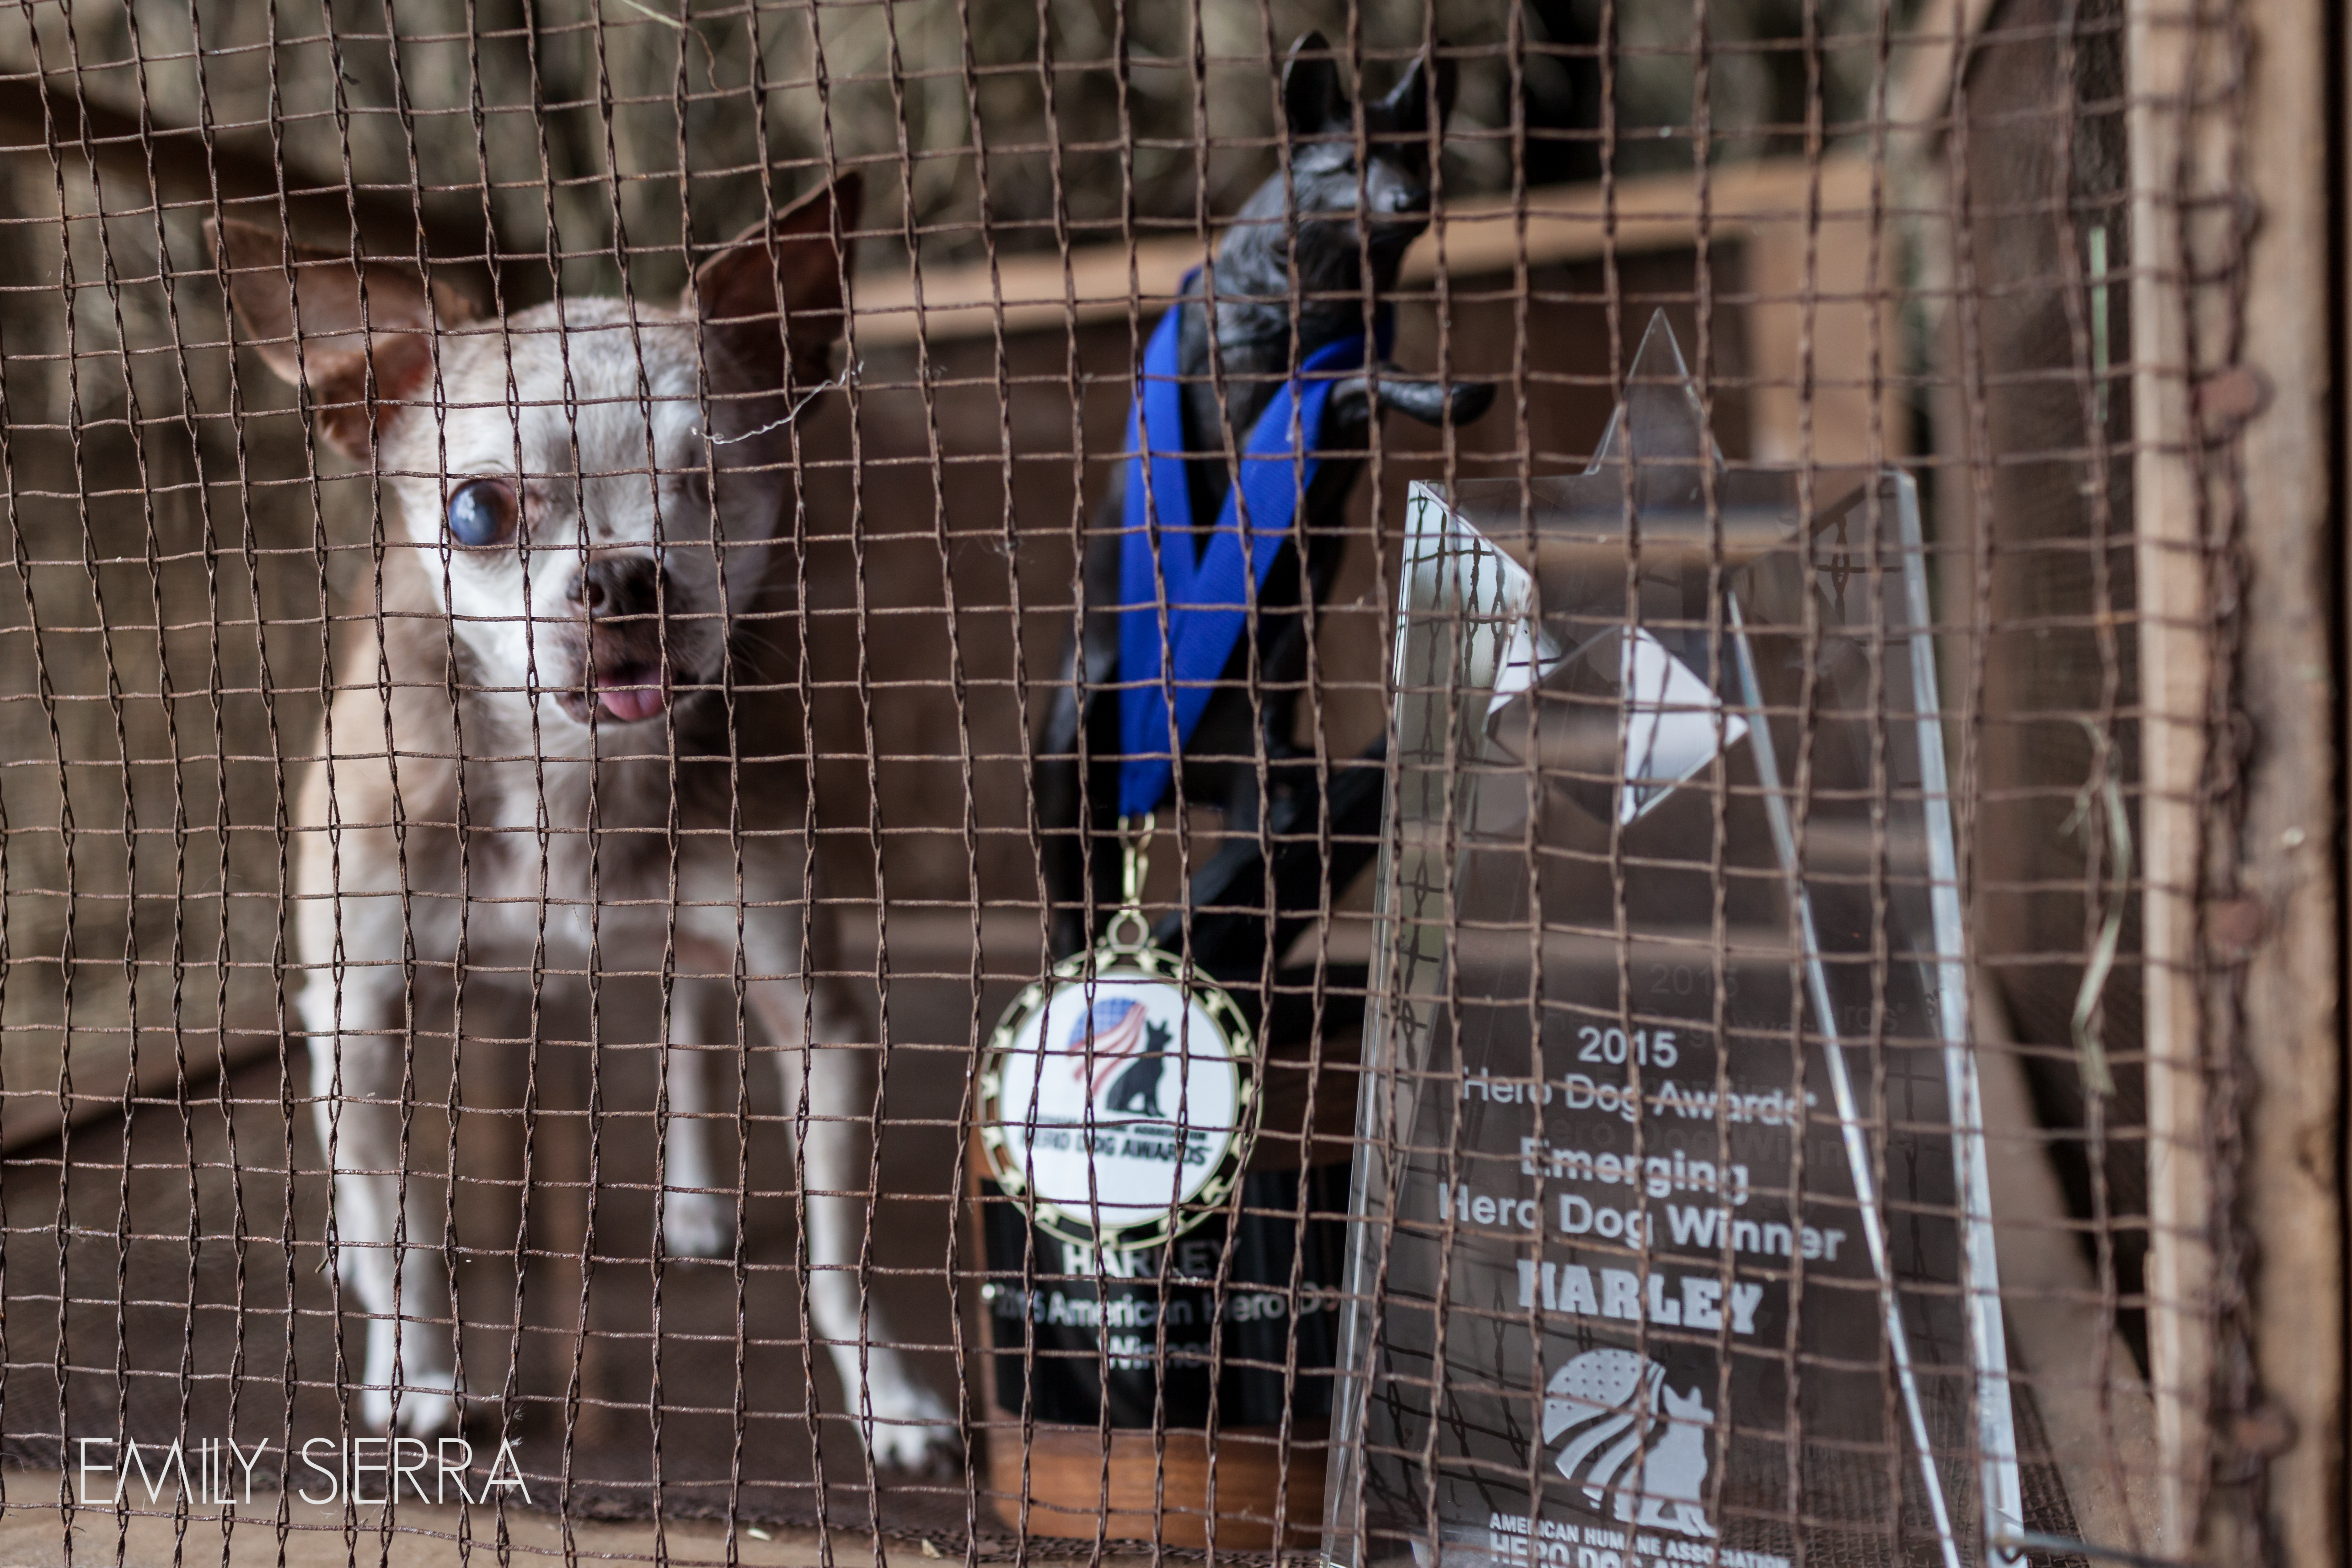 A powerful photo of Harley in a puppy mill cage with his awards.